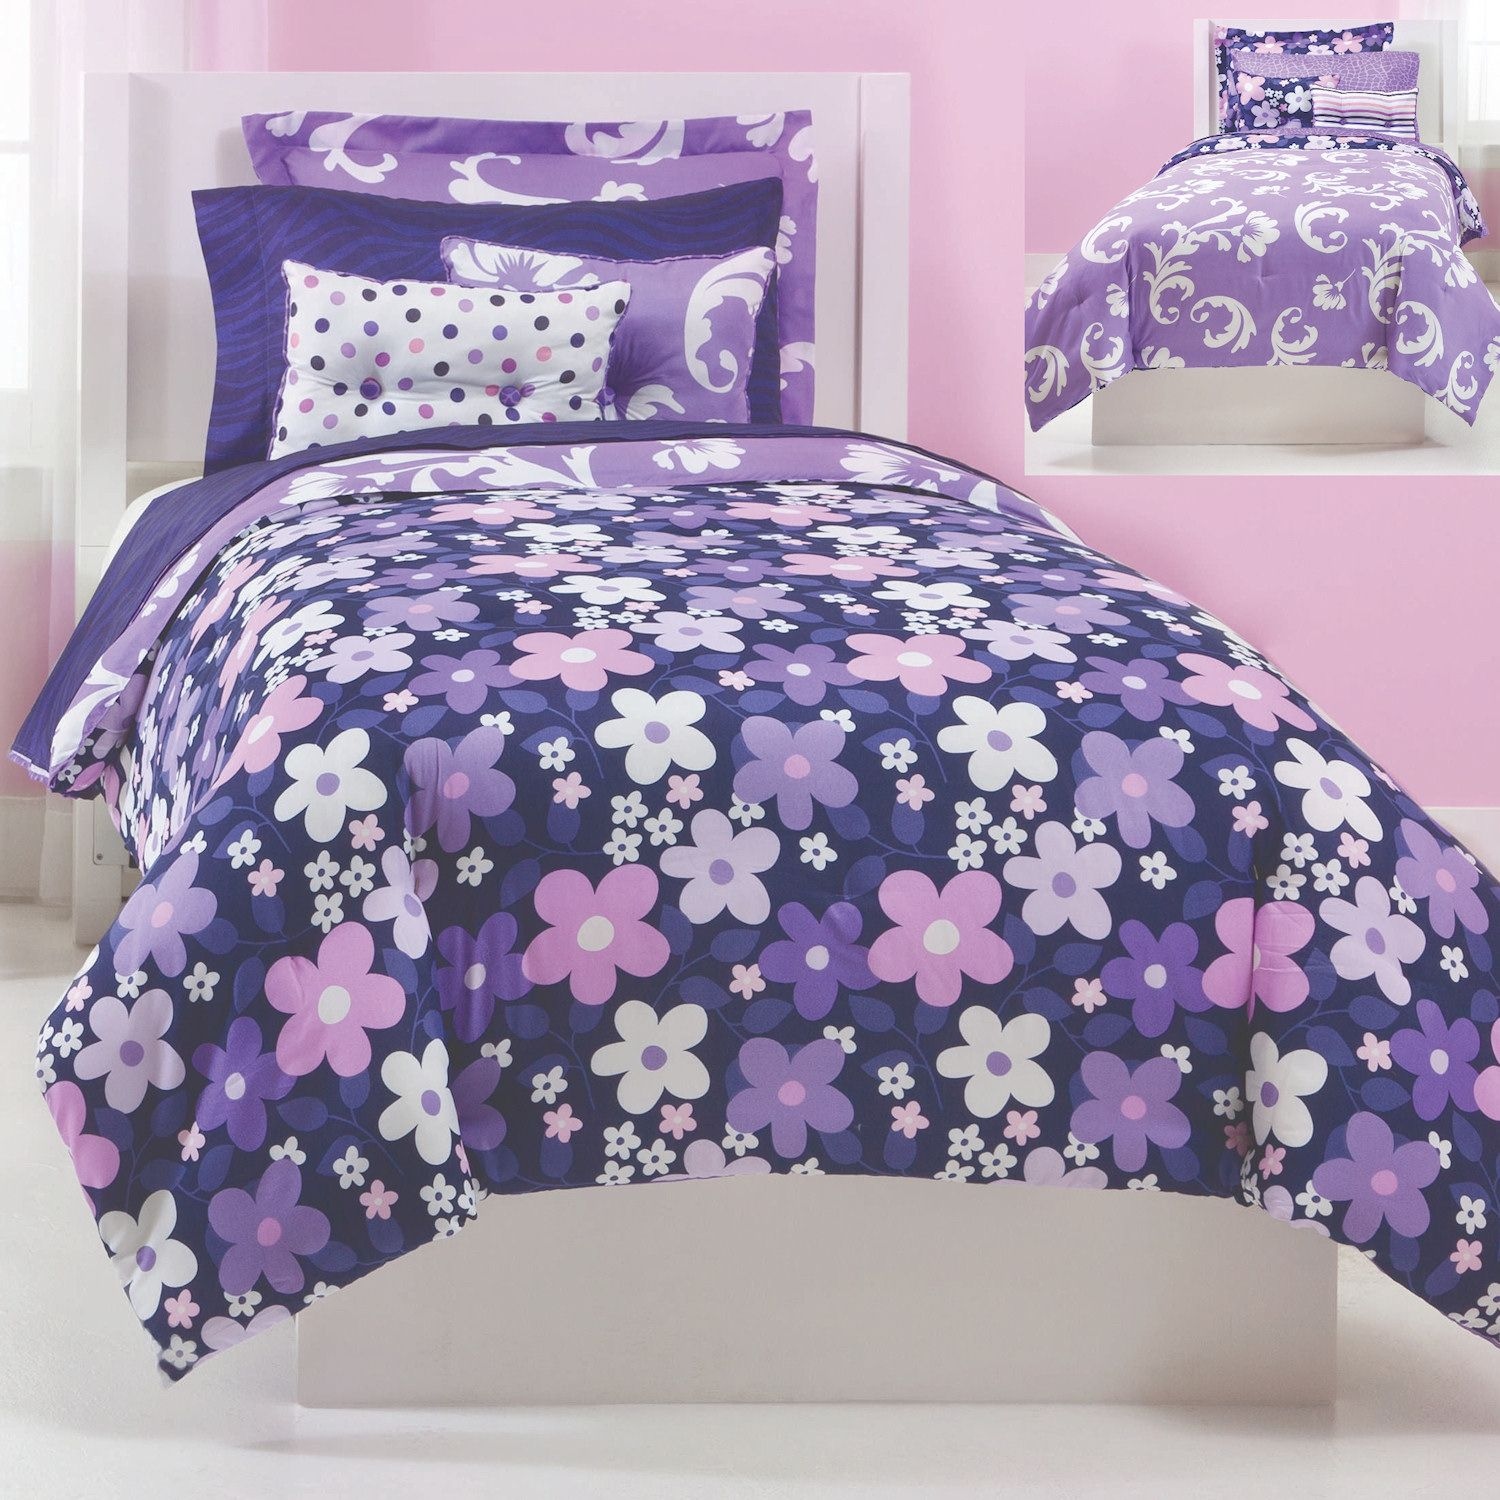 Grape gatspy bedding reversible purple floral and scroll bedding this grape gatsby bedding set - Cute teenage girl bedding sets ...